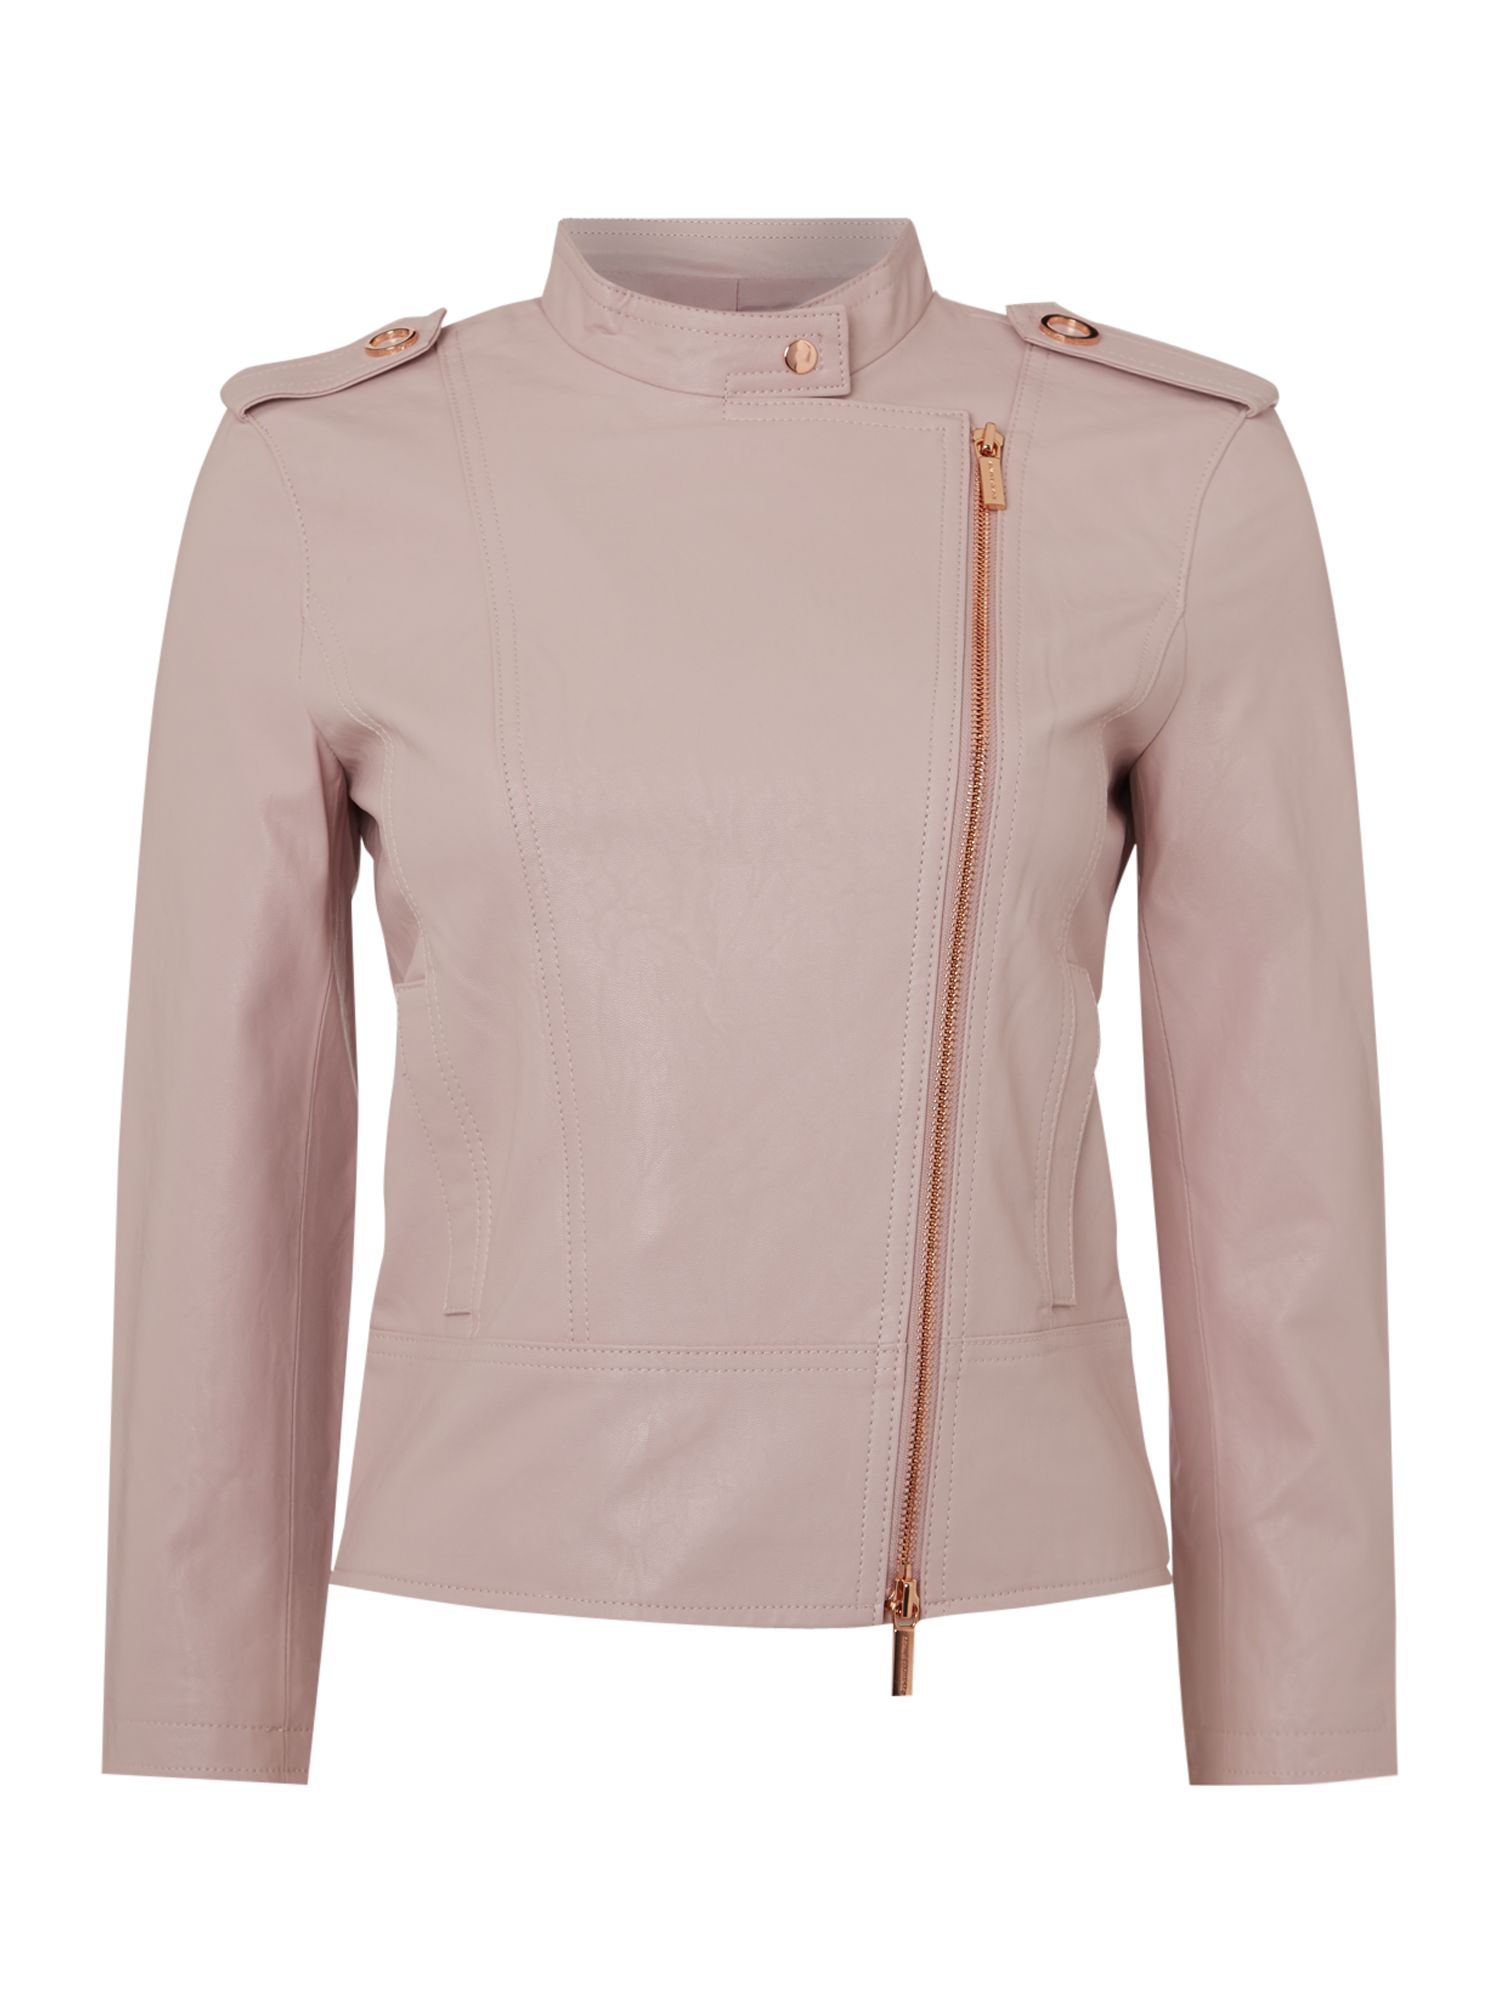 Armani Exchange Jacket in Pink, Pink